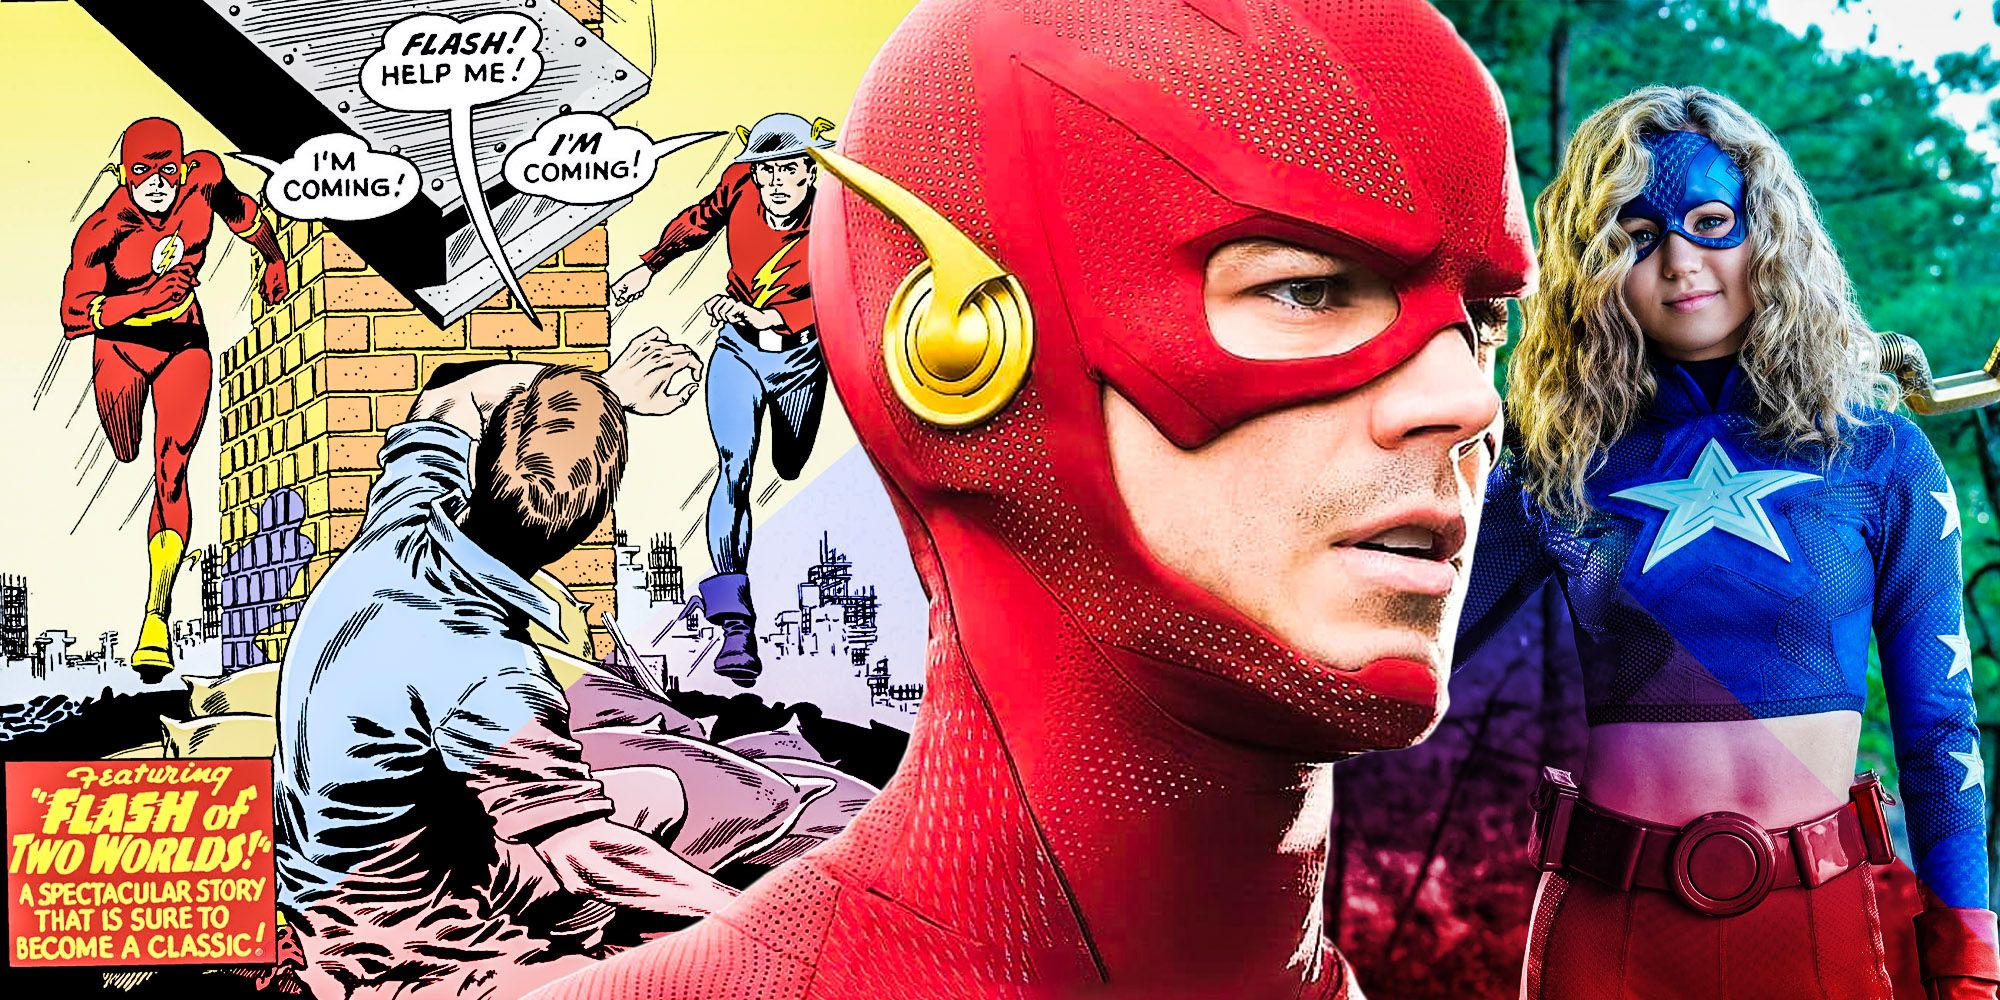 How Stargirl's Flash Crossover Can Lead To An Iconic Barry Allen Story